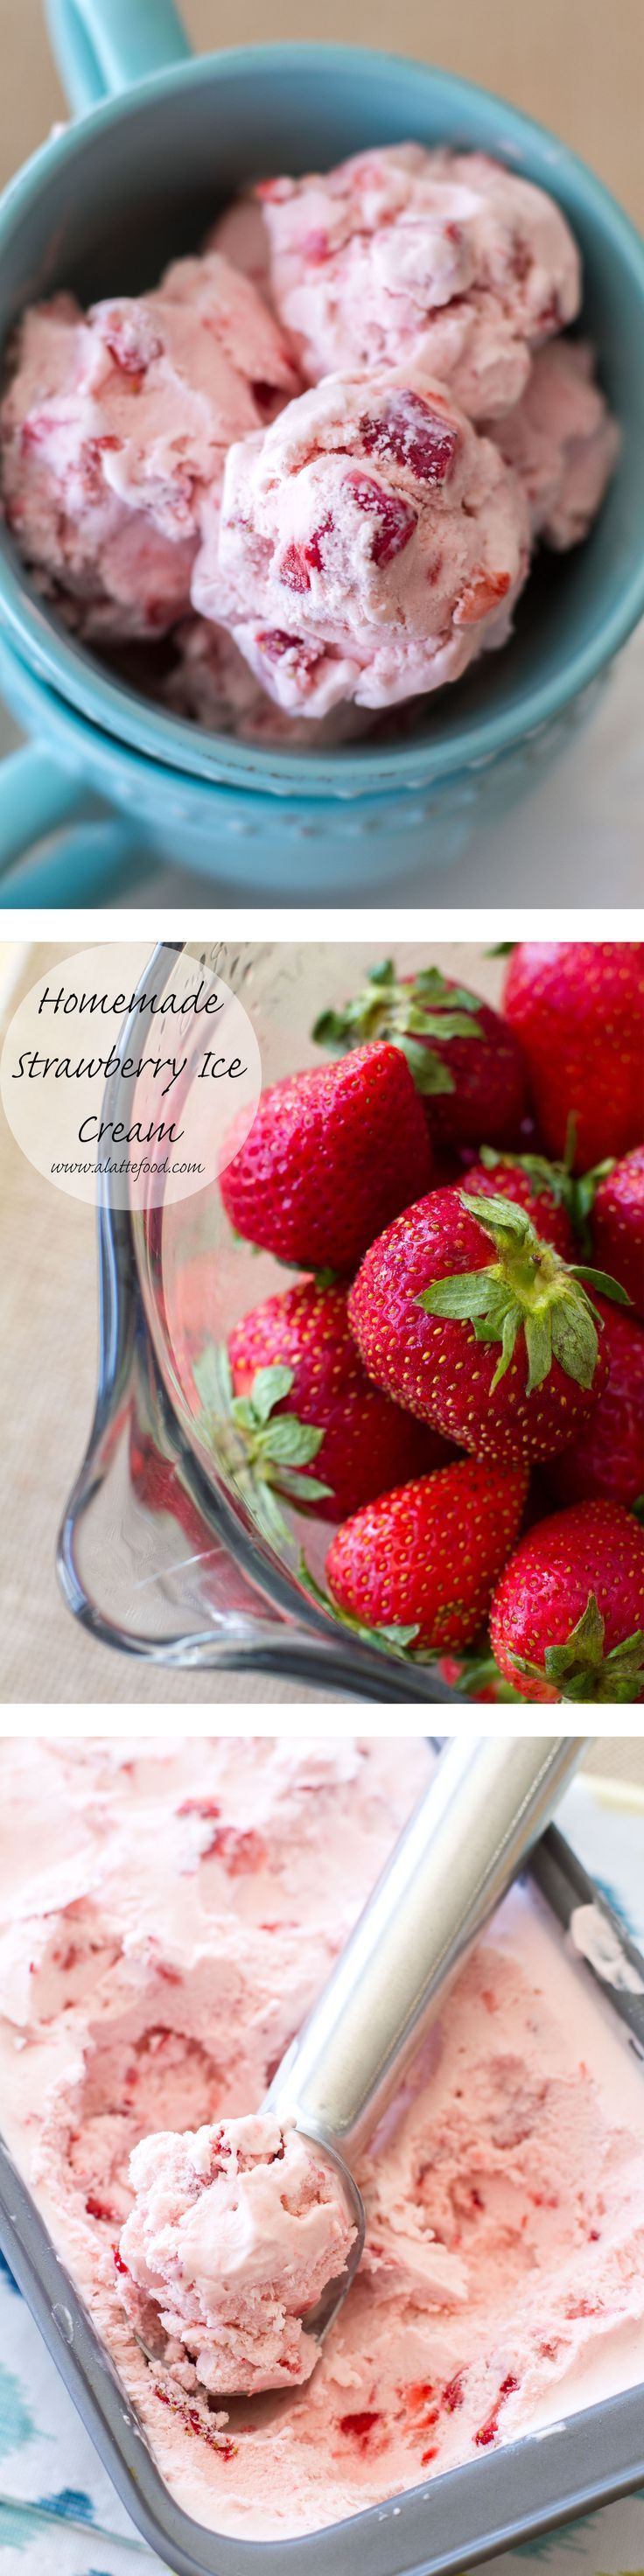 This homemade ice cream is creamy, dreamy, and made with fresh strawberries. It is so delicious! | http://www.alattefood.com